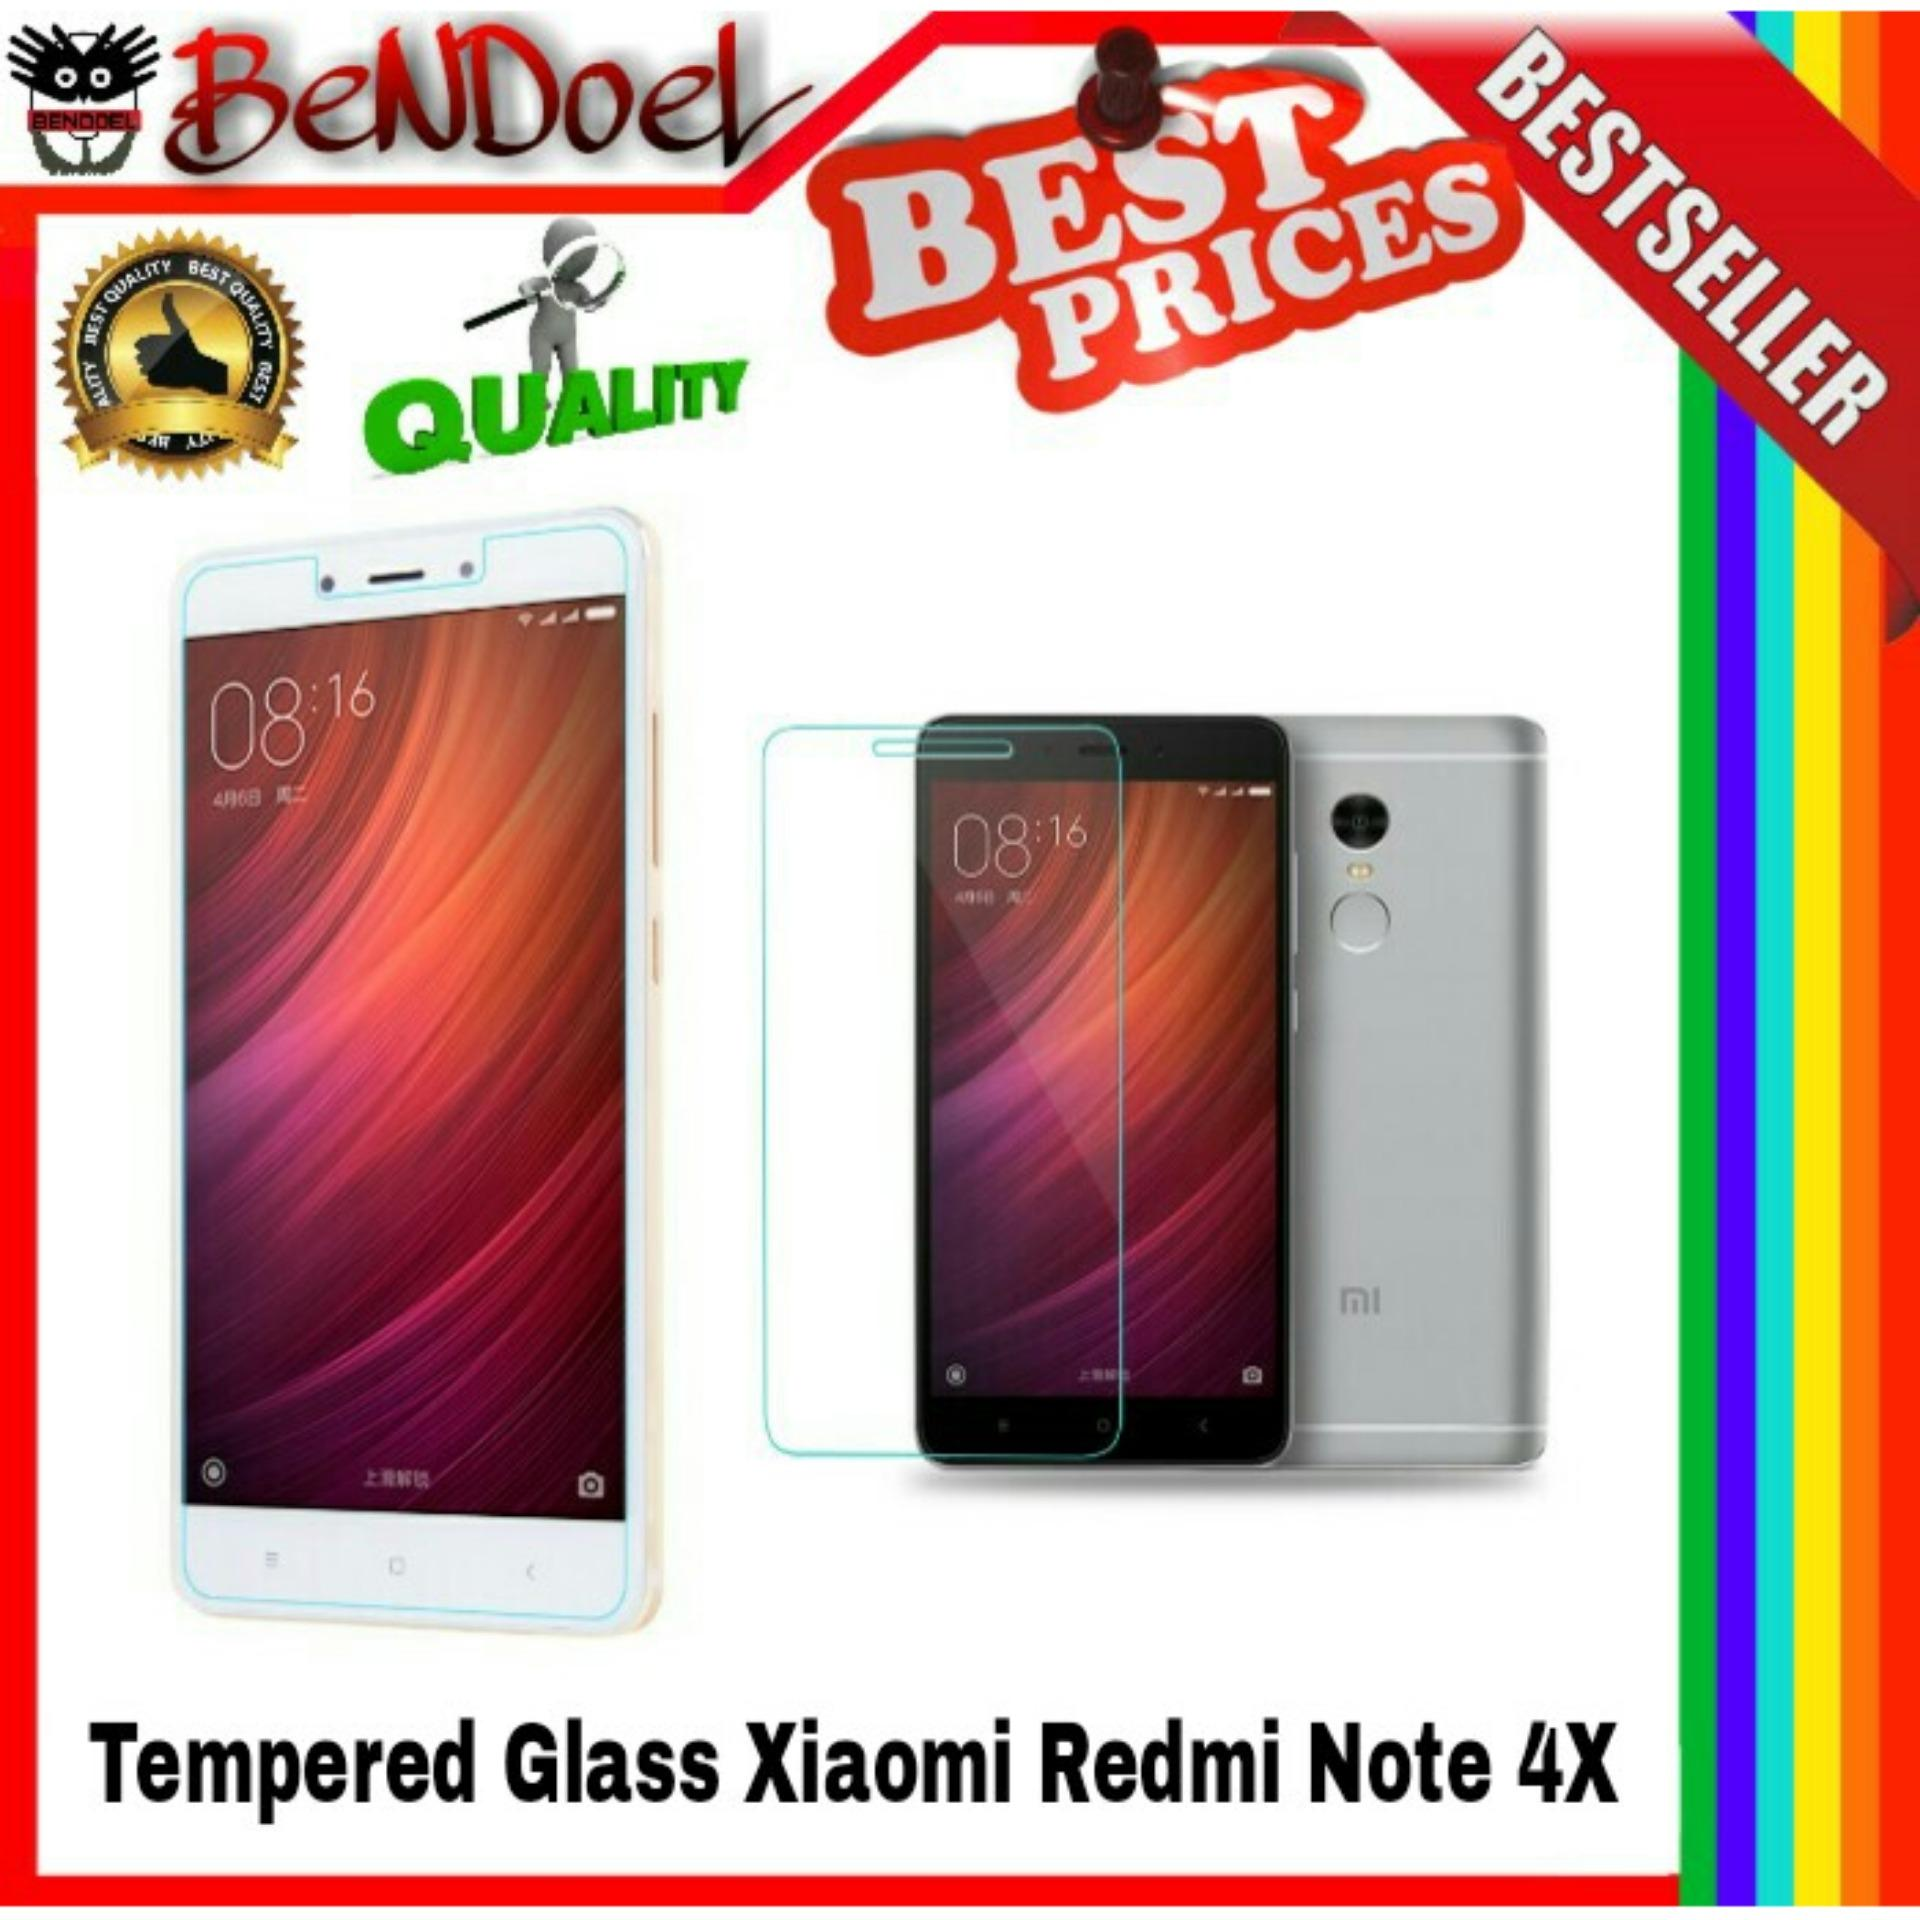 Vn Tempered Glass 9H for Oppo R5 / R8106 2D Round Curved Edge Screen Protector Film. Source · XIAOMI REDMI NOTE 4X 2D ROUND CURVED EDGE TRANSPARAN ... Vn .